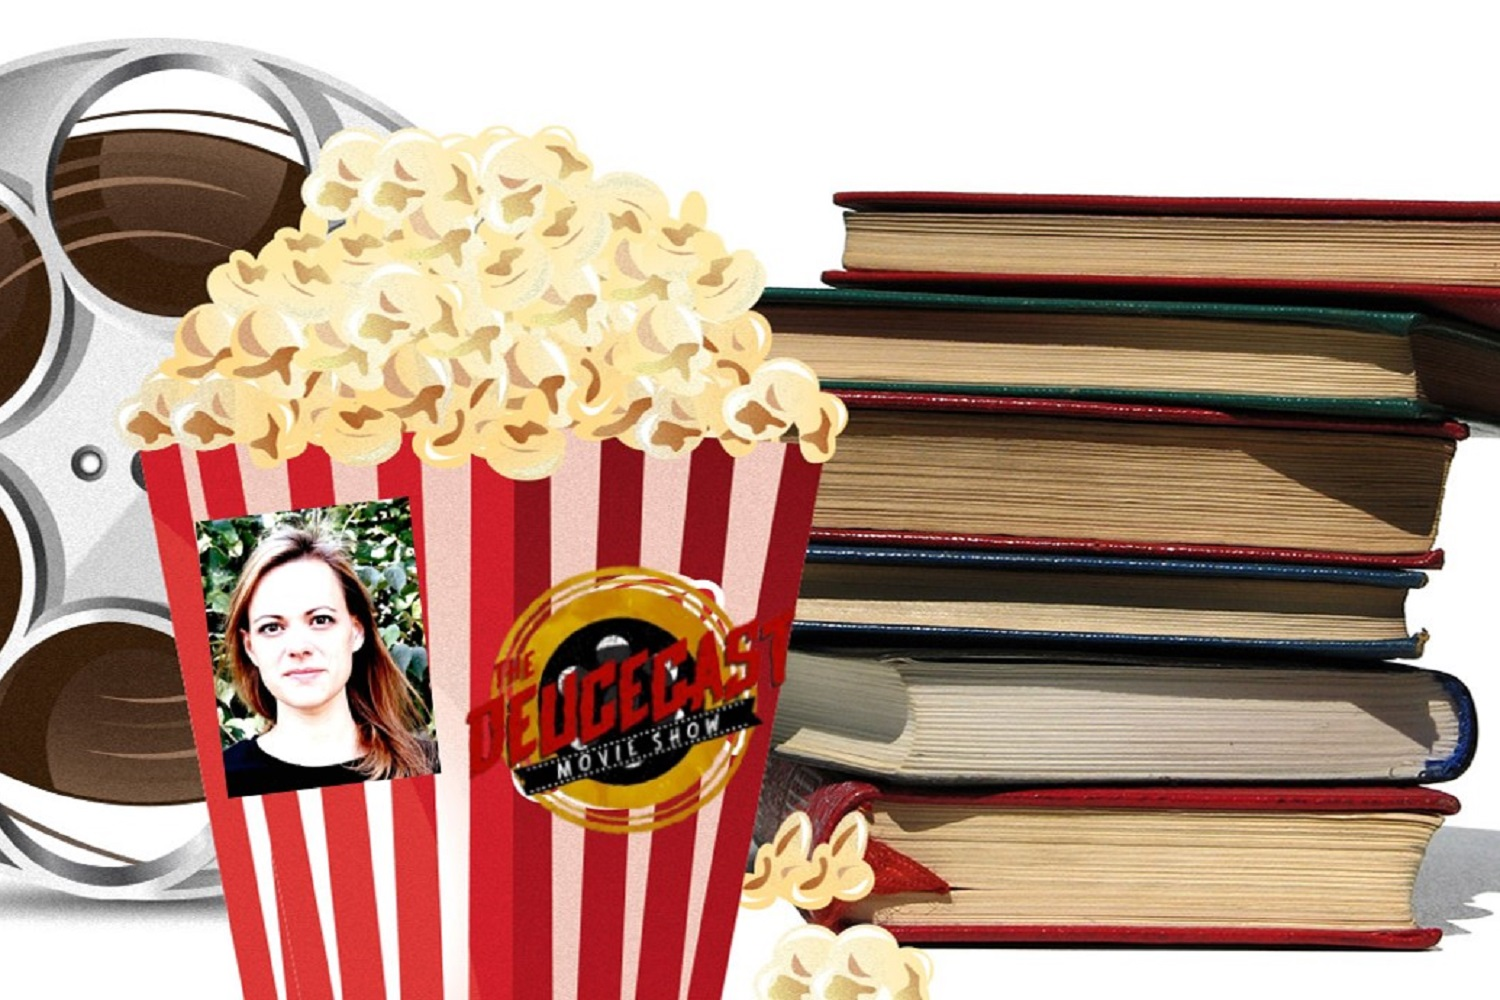 The Deucecast Movie Show #397: Books, Movies, and K.B. Hoyle